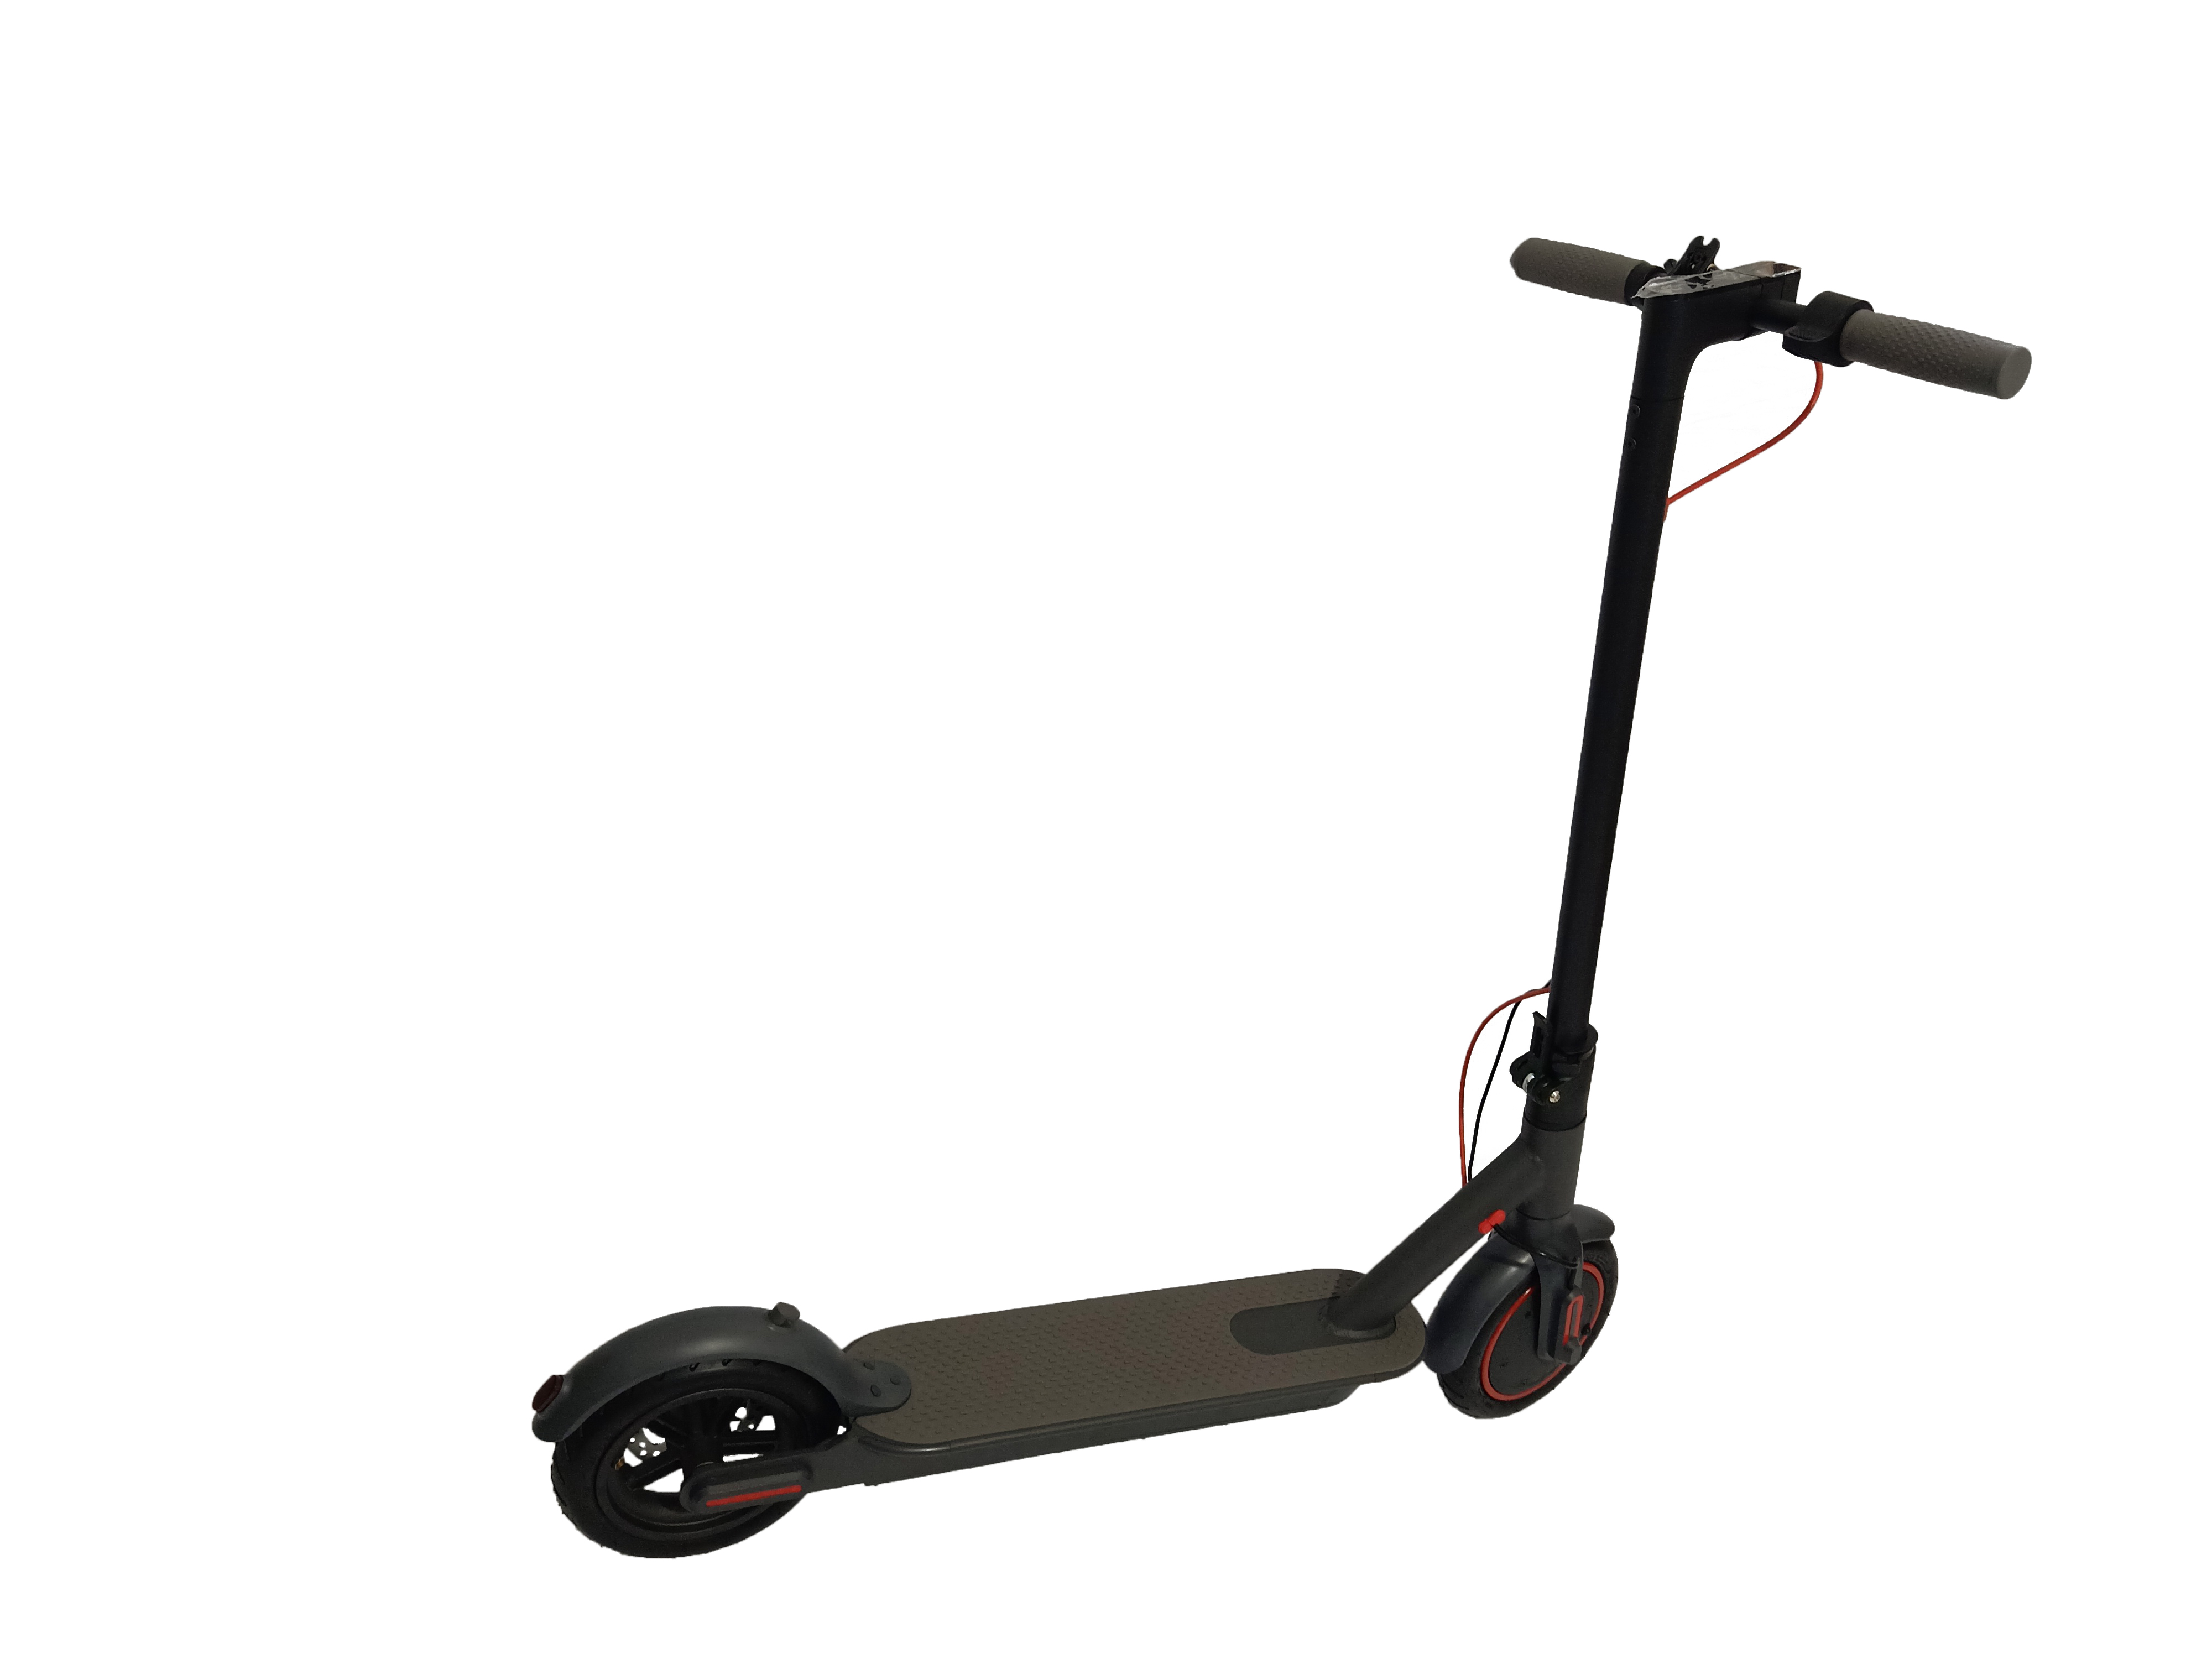 Electric Scooters Pro-an artifact for commuting to get off work